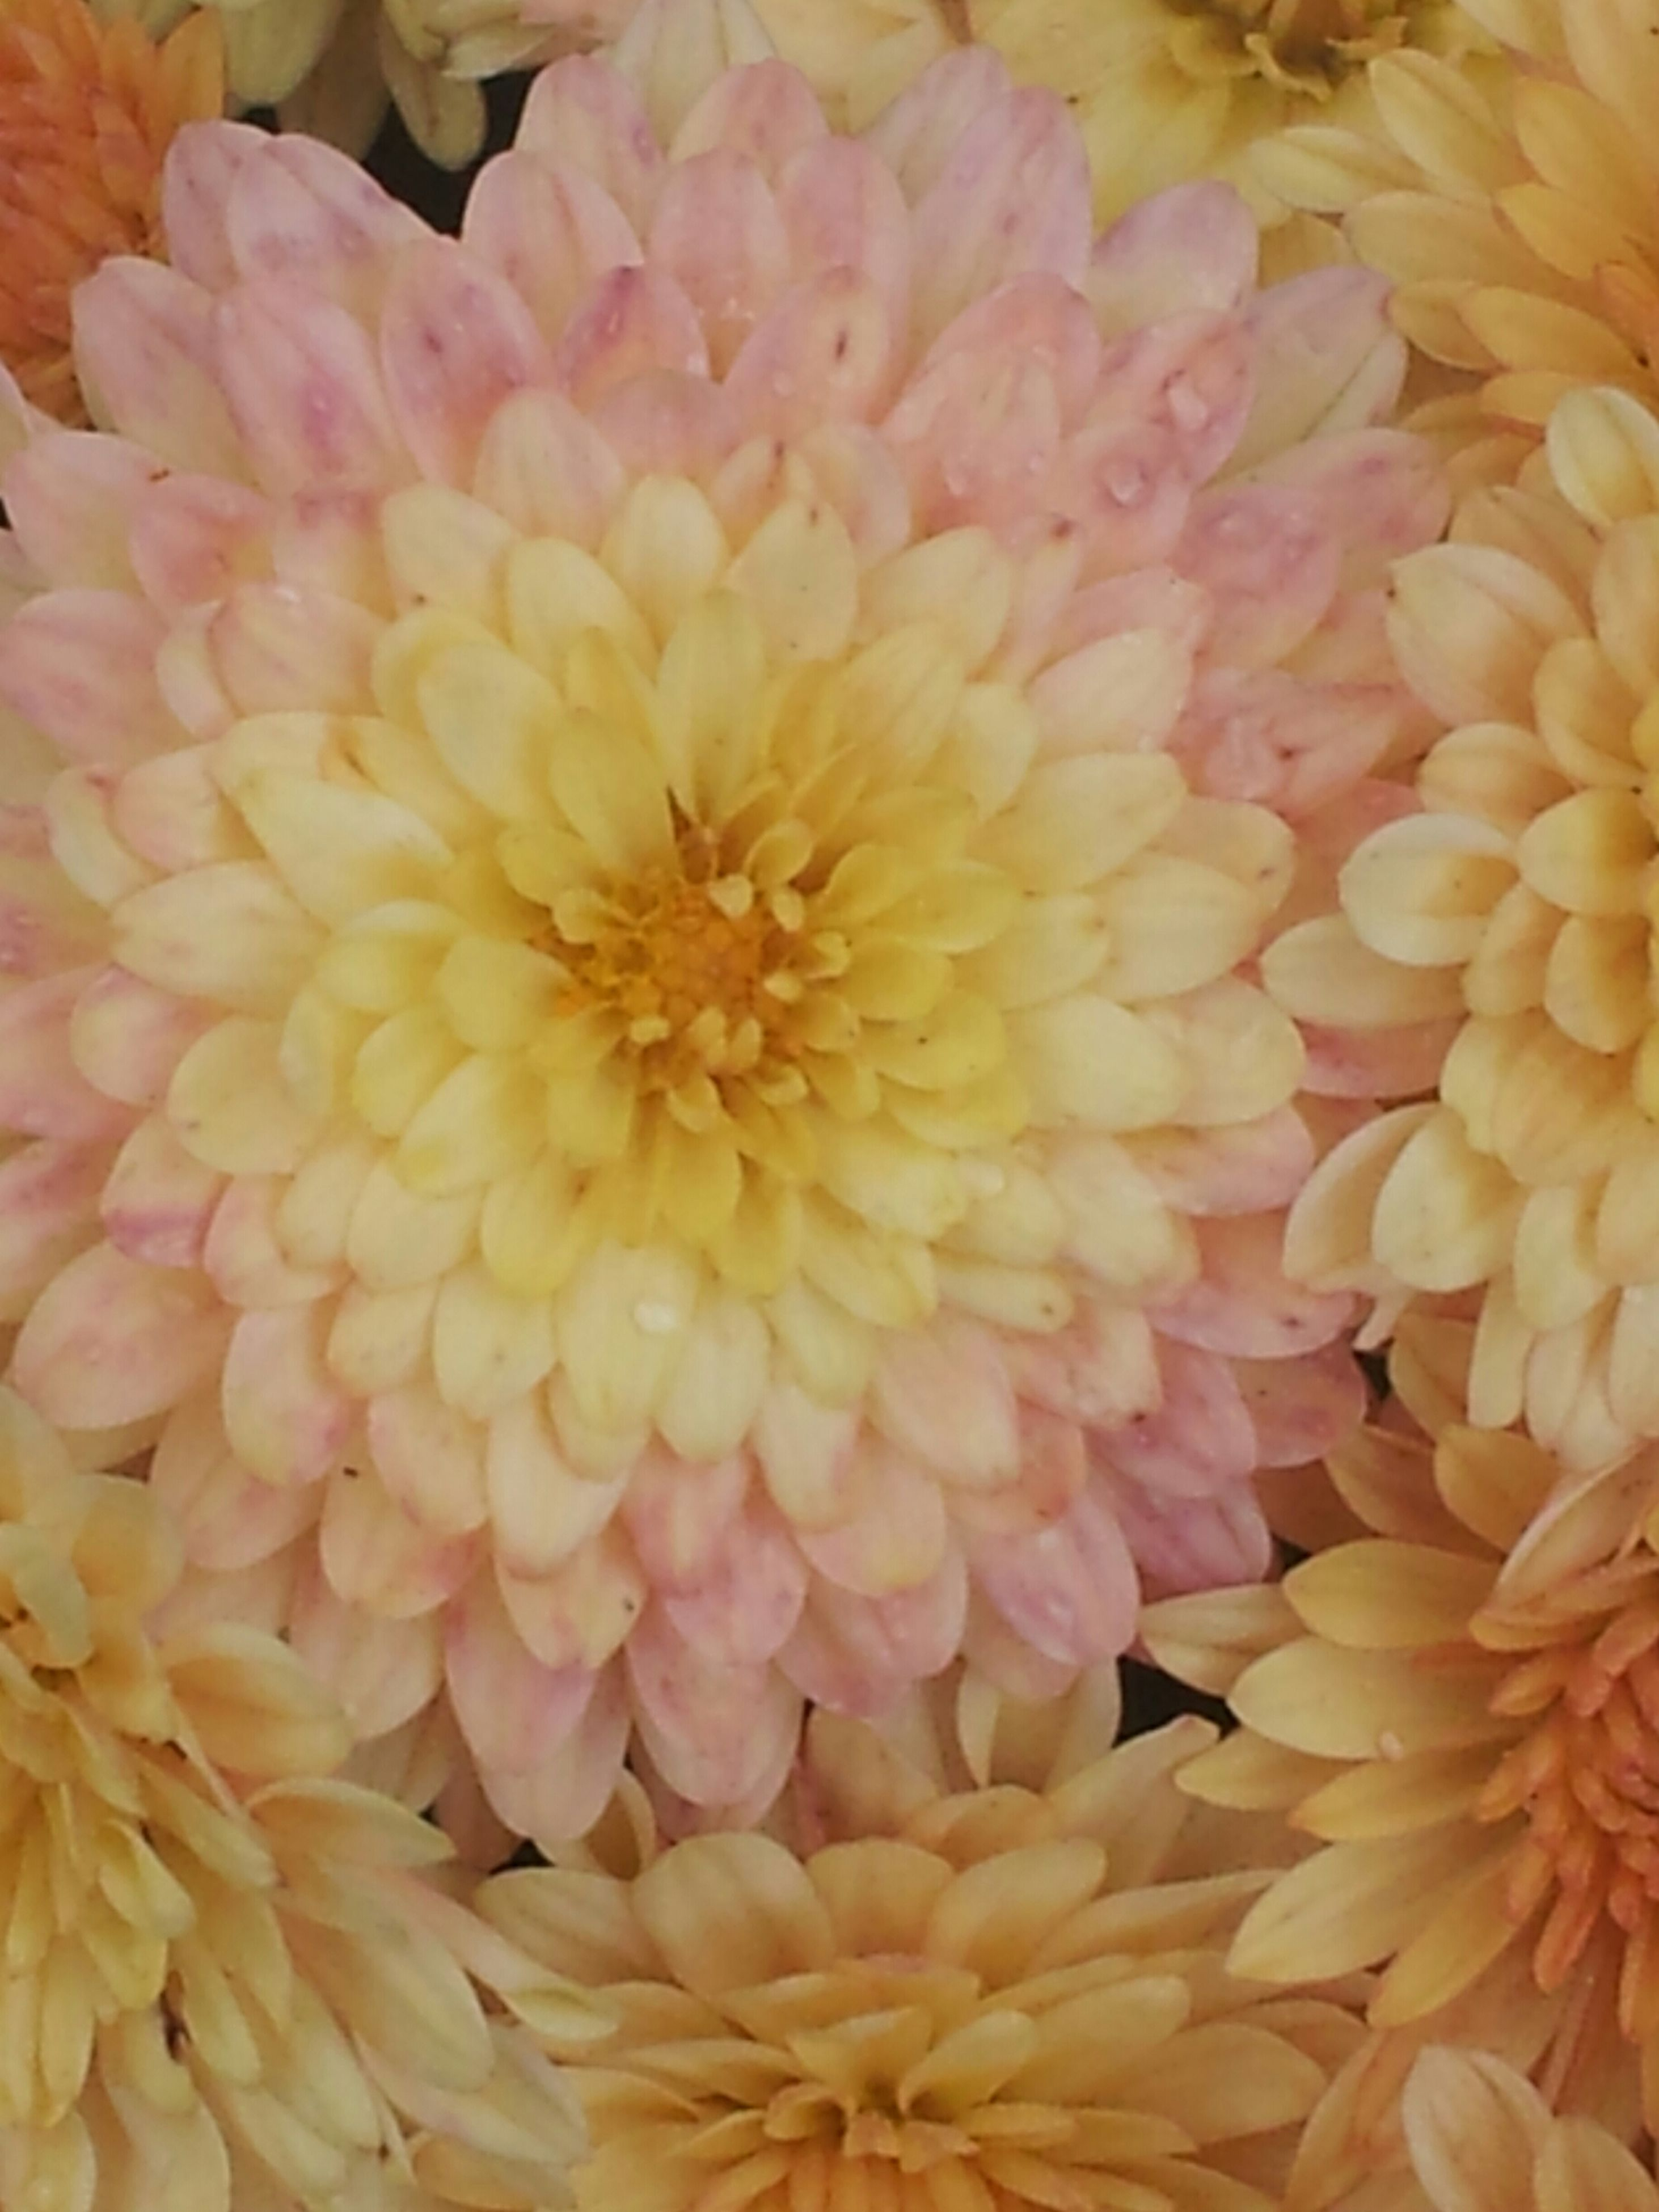 flower, petal, freshness, flower head, fragility, full frame, beauty in nature, close-up, backgrounds, blooming, yellow, nature, pollen, growth, indoors, no people, high angle view, dahlia, in bloom, natural pattern